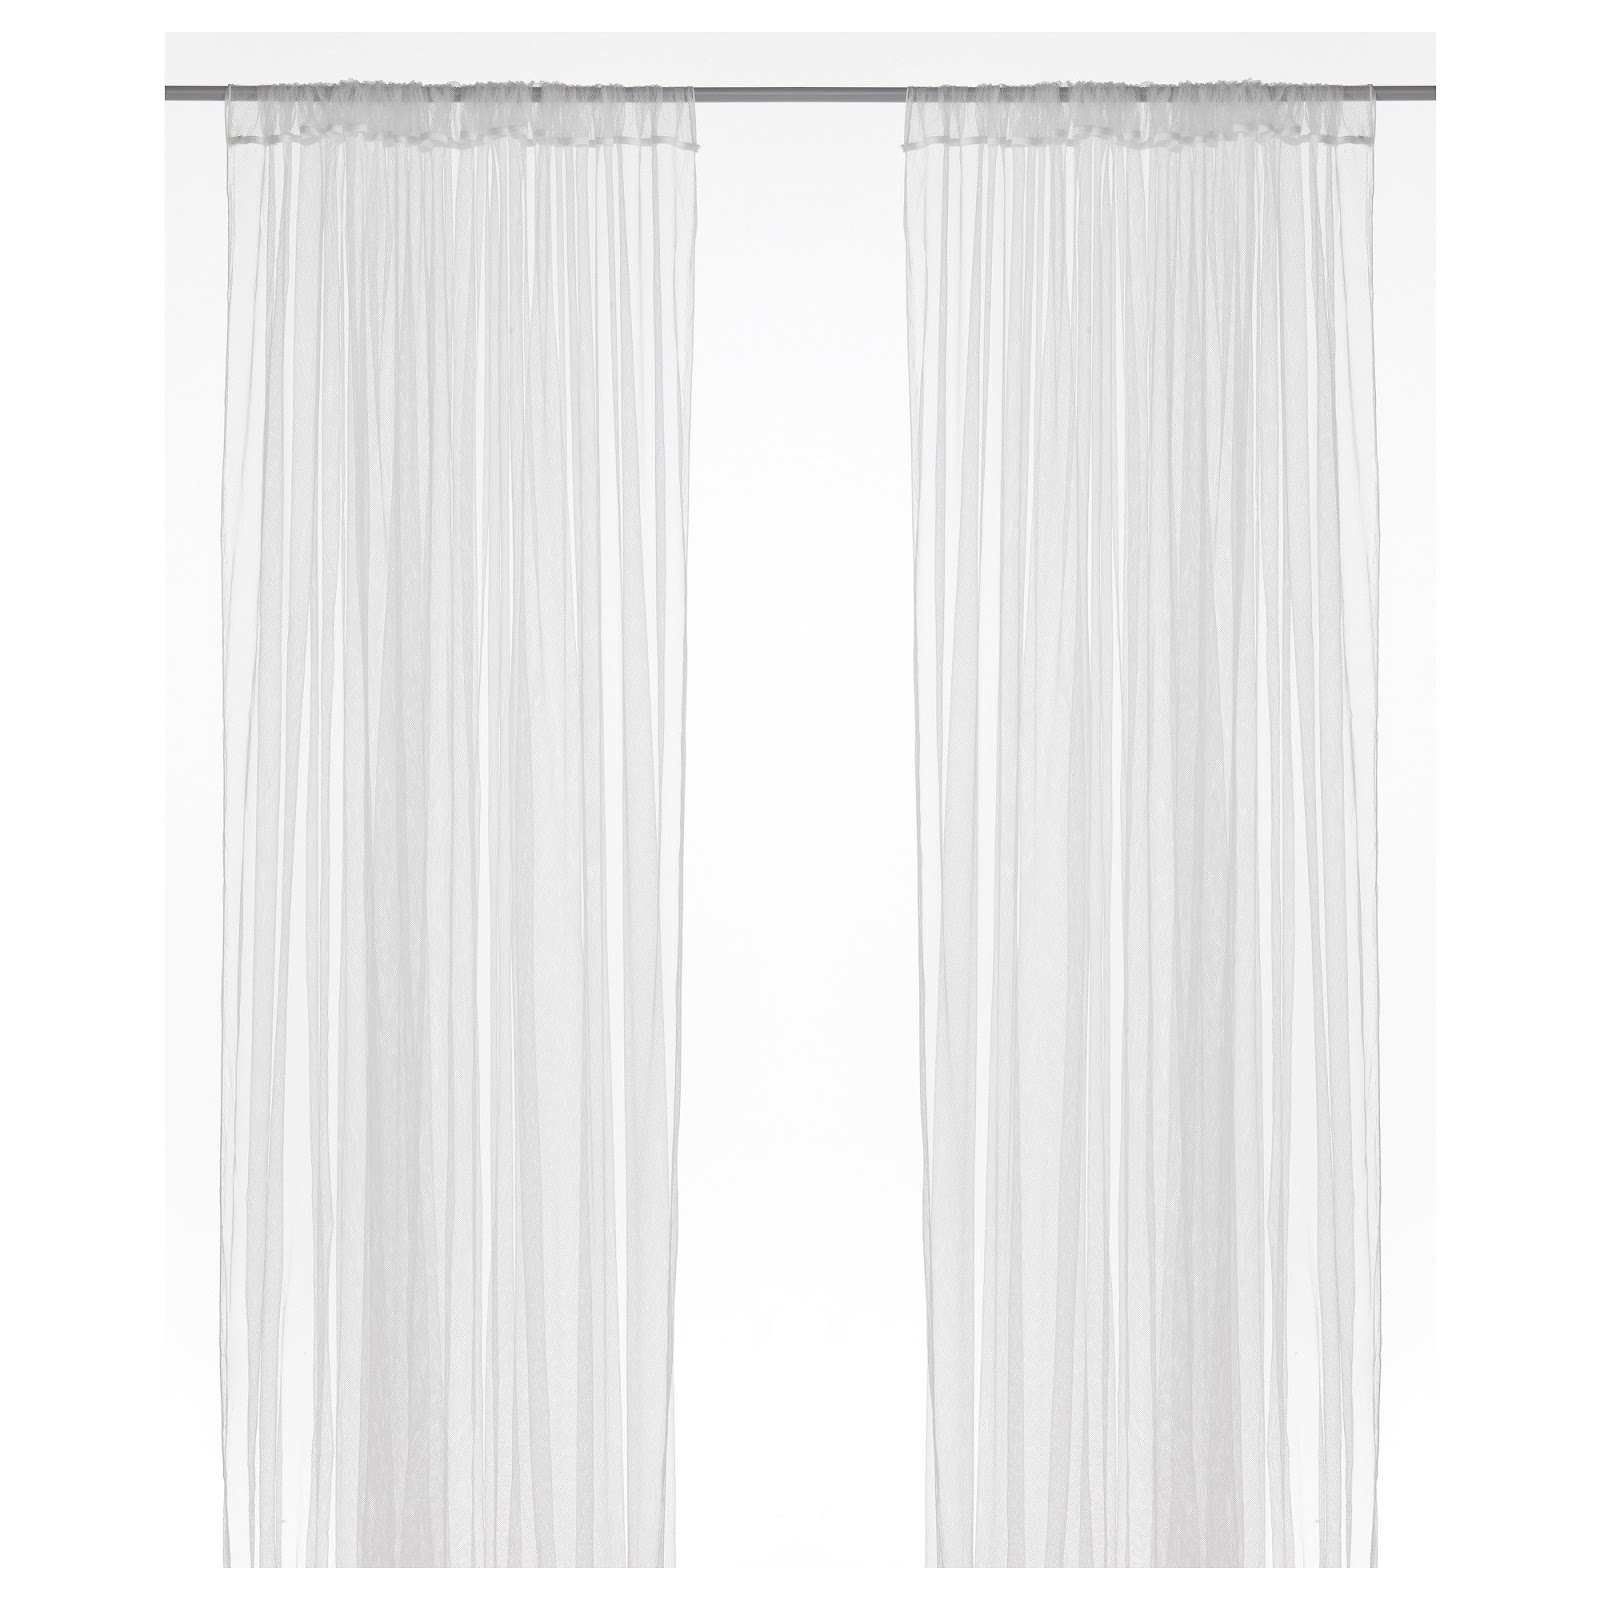 Best Net Curtains Shower Curtain Hooks For Small Bathrooms Way To Hang From Ceiling